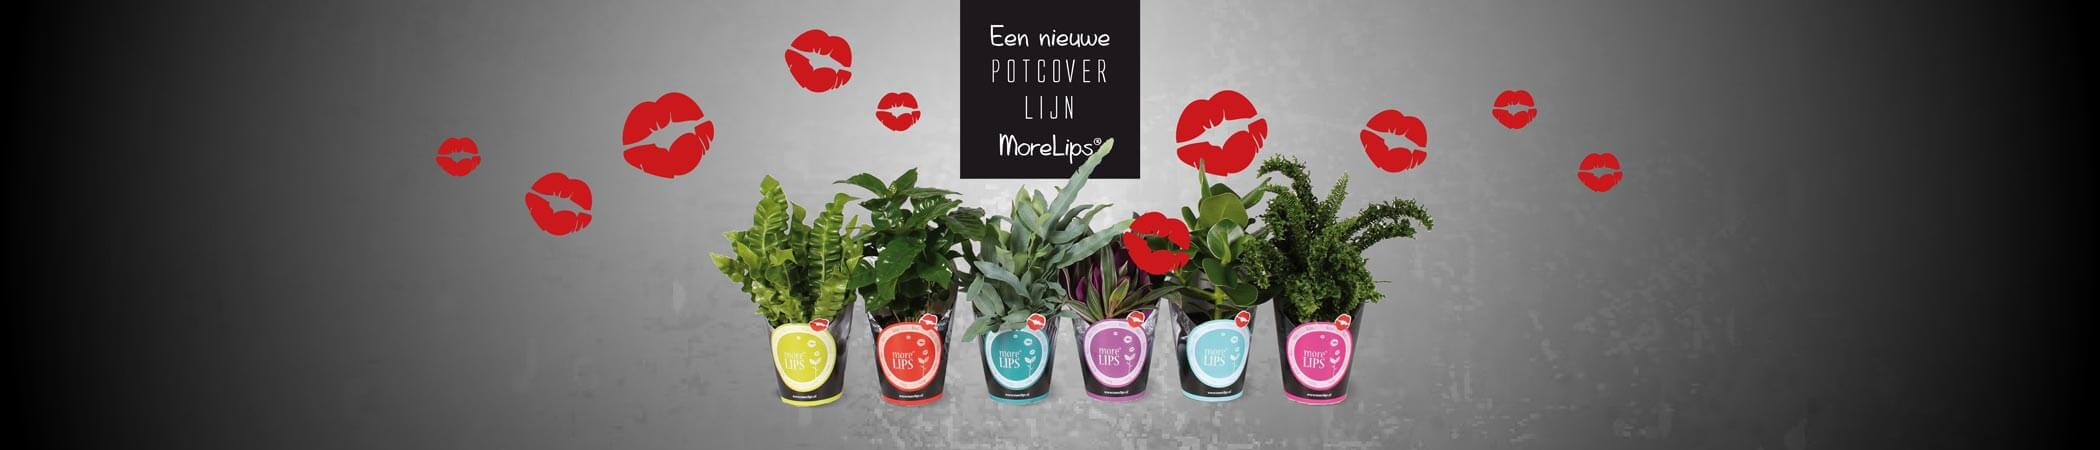 Verschillende Potcovers More Lips